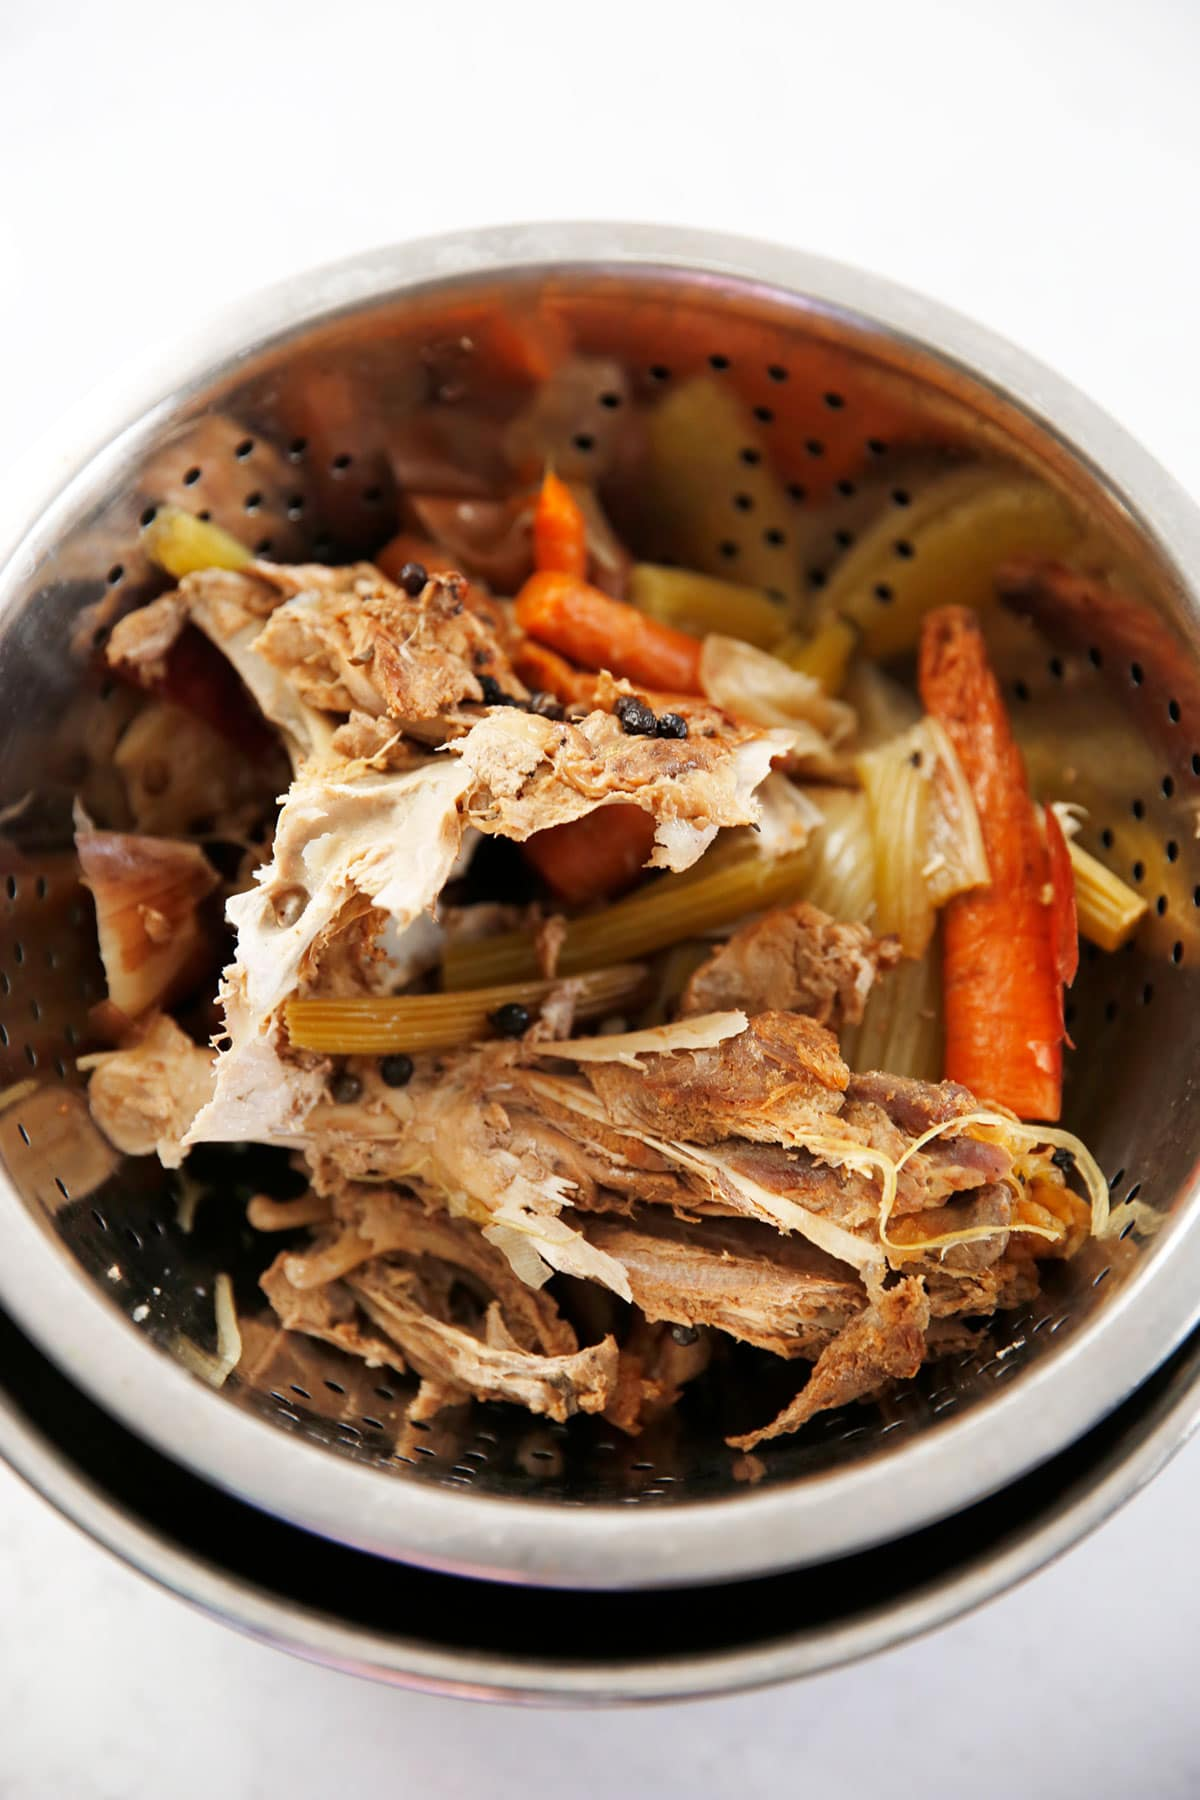 Turkey carcass and veggies being strained after cooking